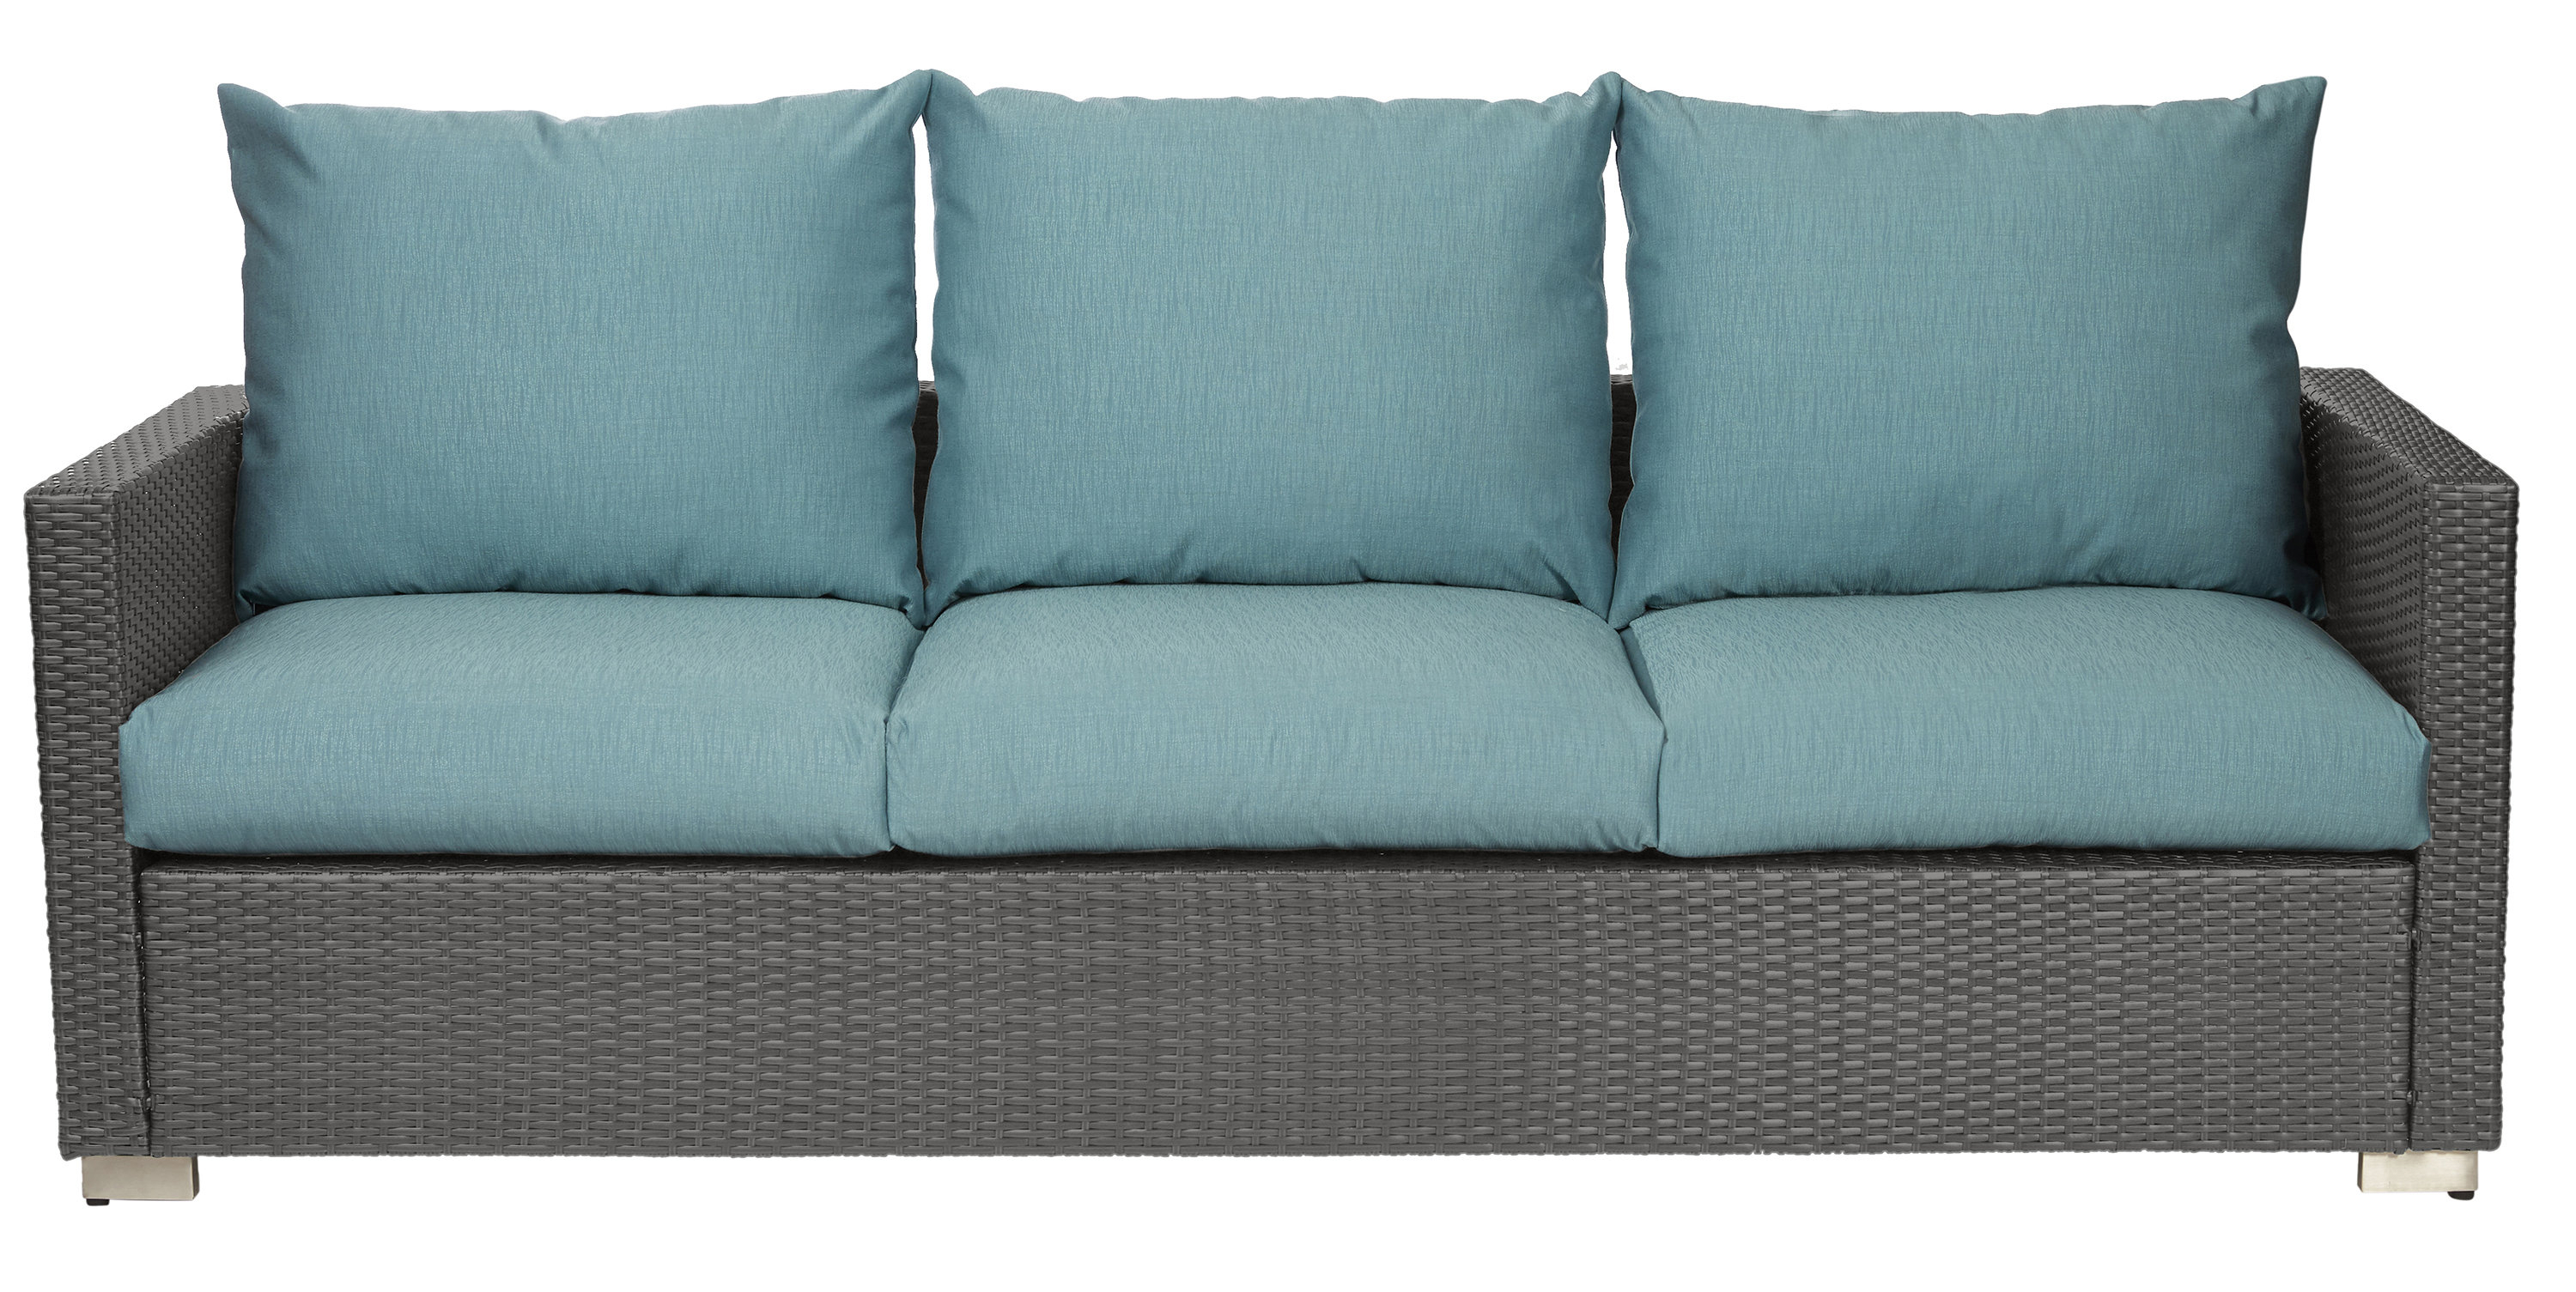 Mcmanis Patio Sofa With Cushion In Most Recently Released Camak Patio Loveseats With Cushions (View 10 of 20)